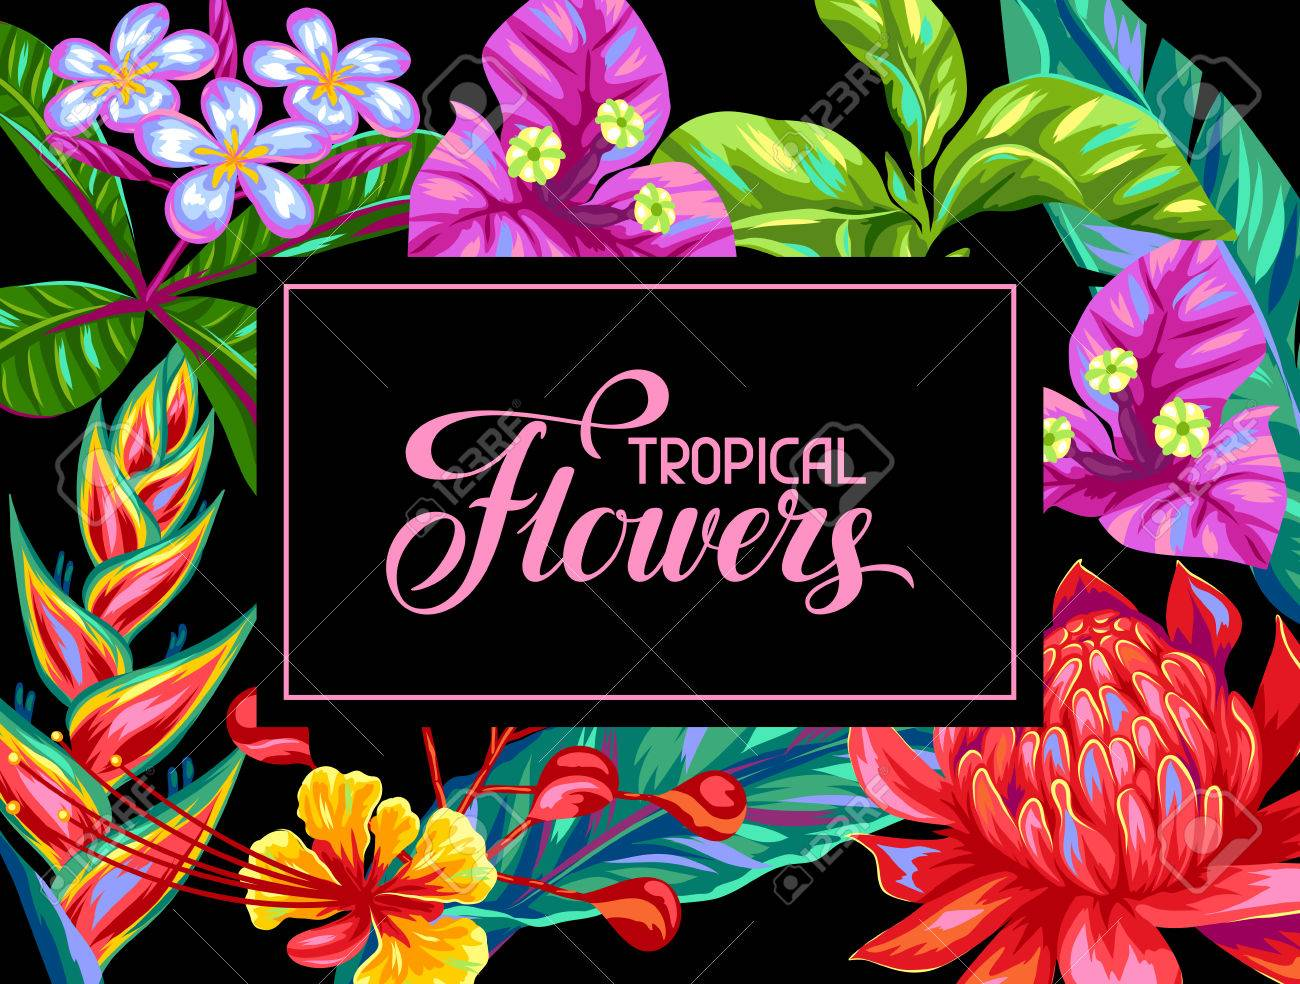 Invitation card with Thailand flowers. Tropical multicolor plants, leaves and buds. - 67192369